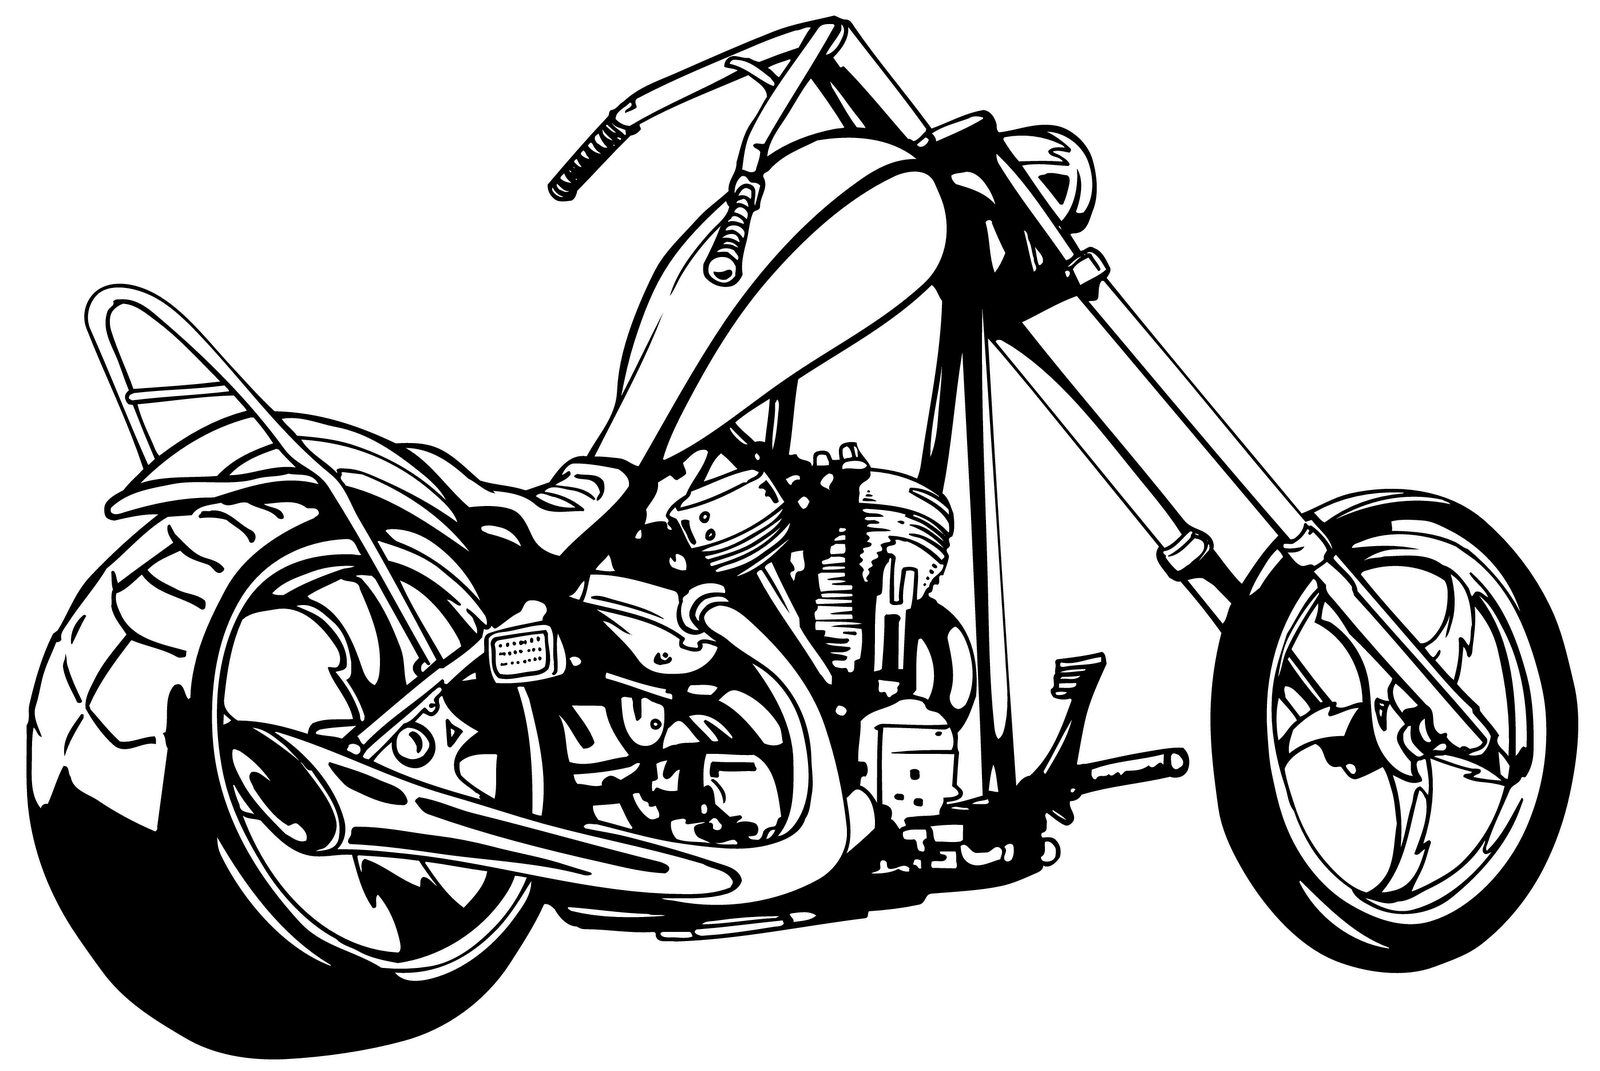 Tribal Motorcycle Graphics : Motorcycle Tribal Clipart Black And White  Clipart Panda - Free ...